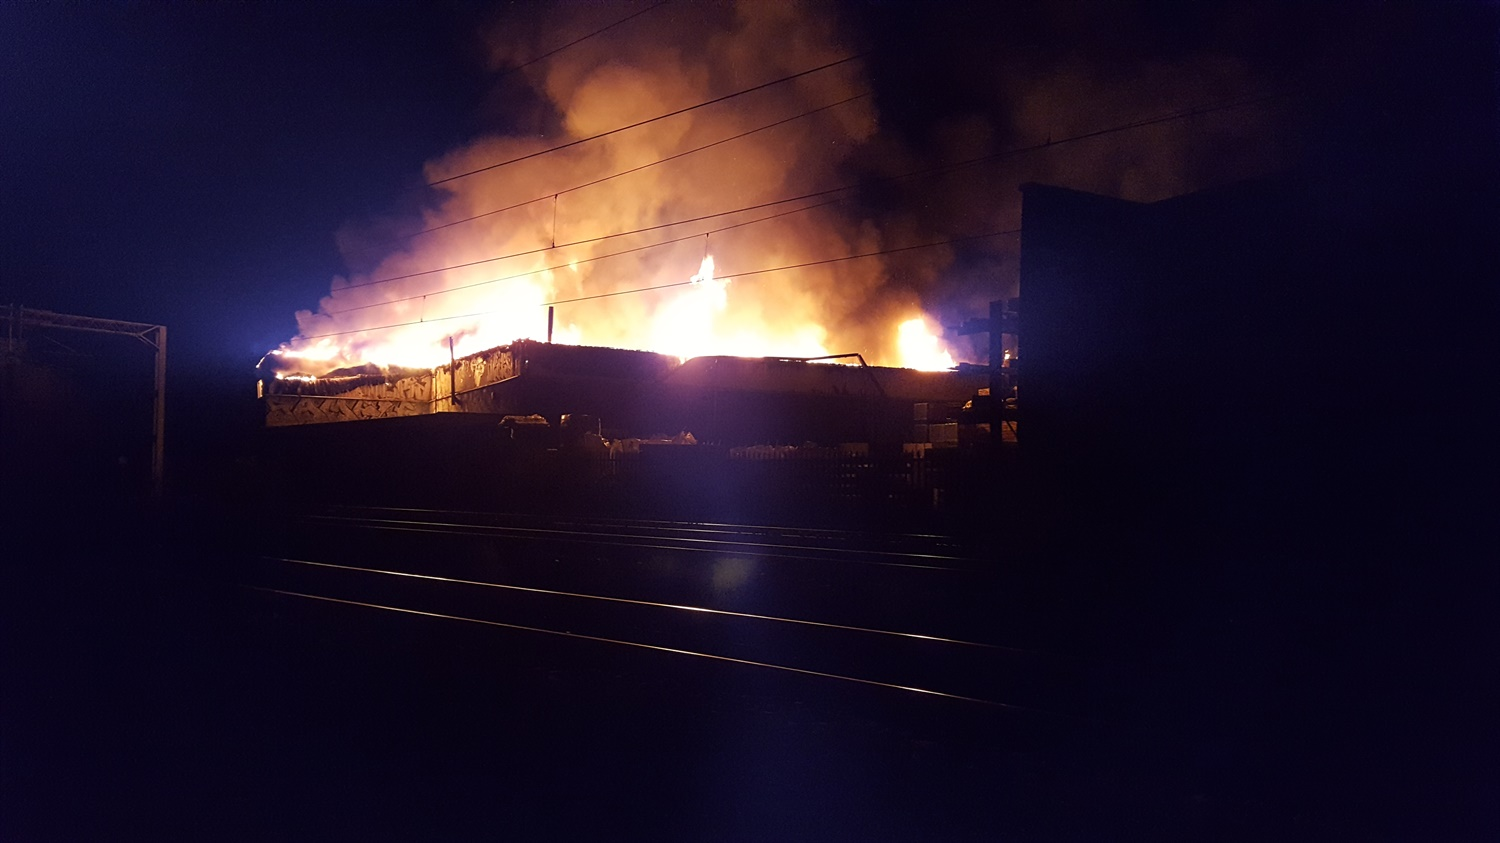 Major delays expected on WCML following blaze